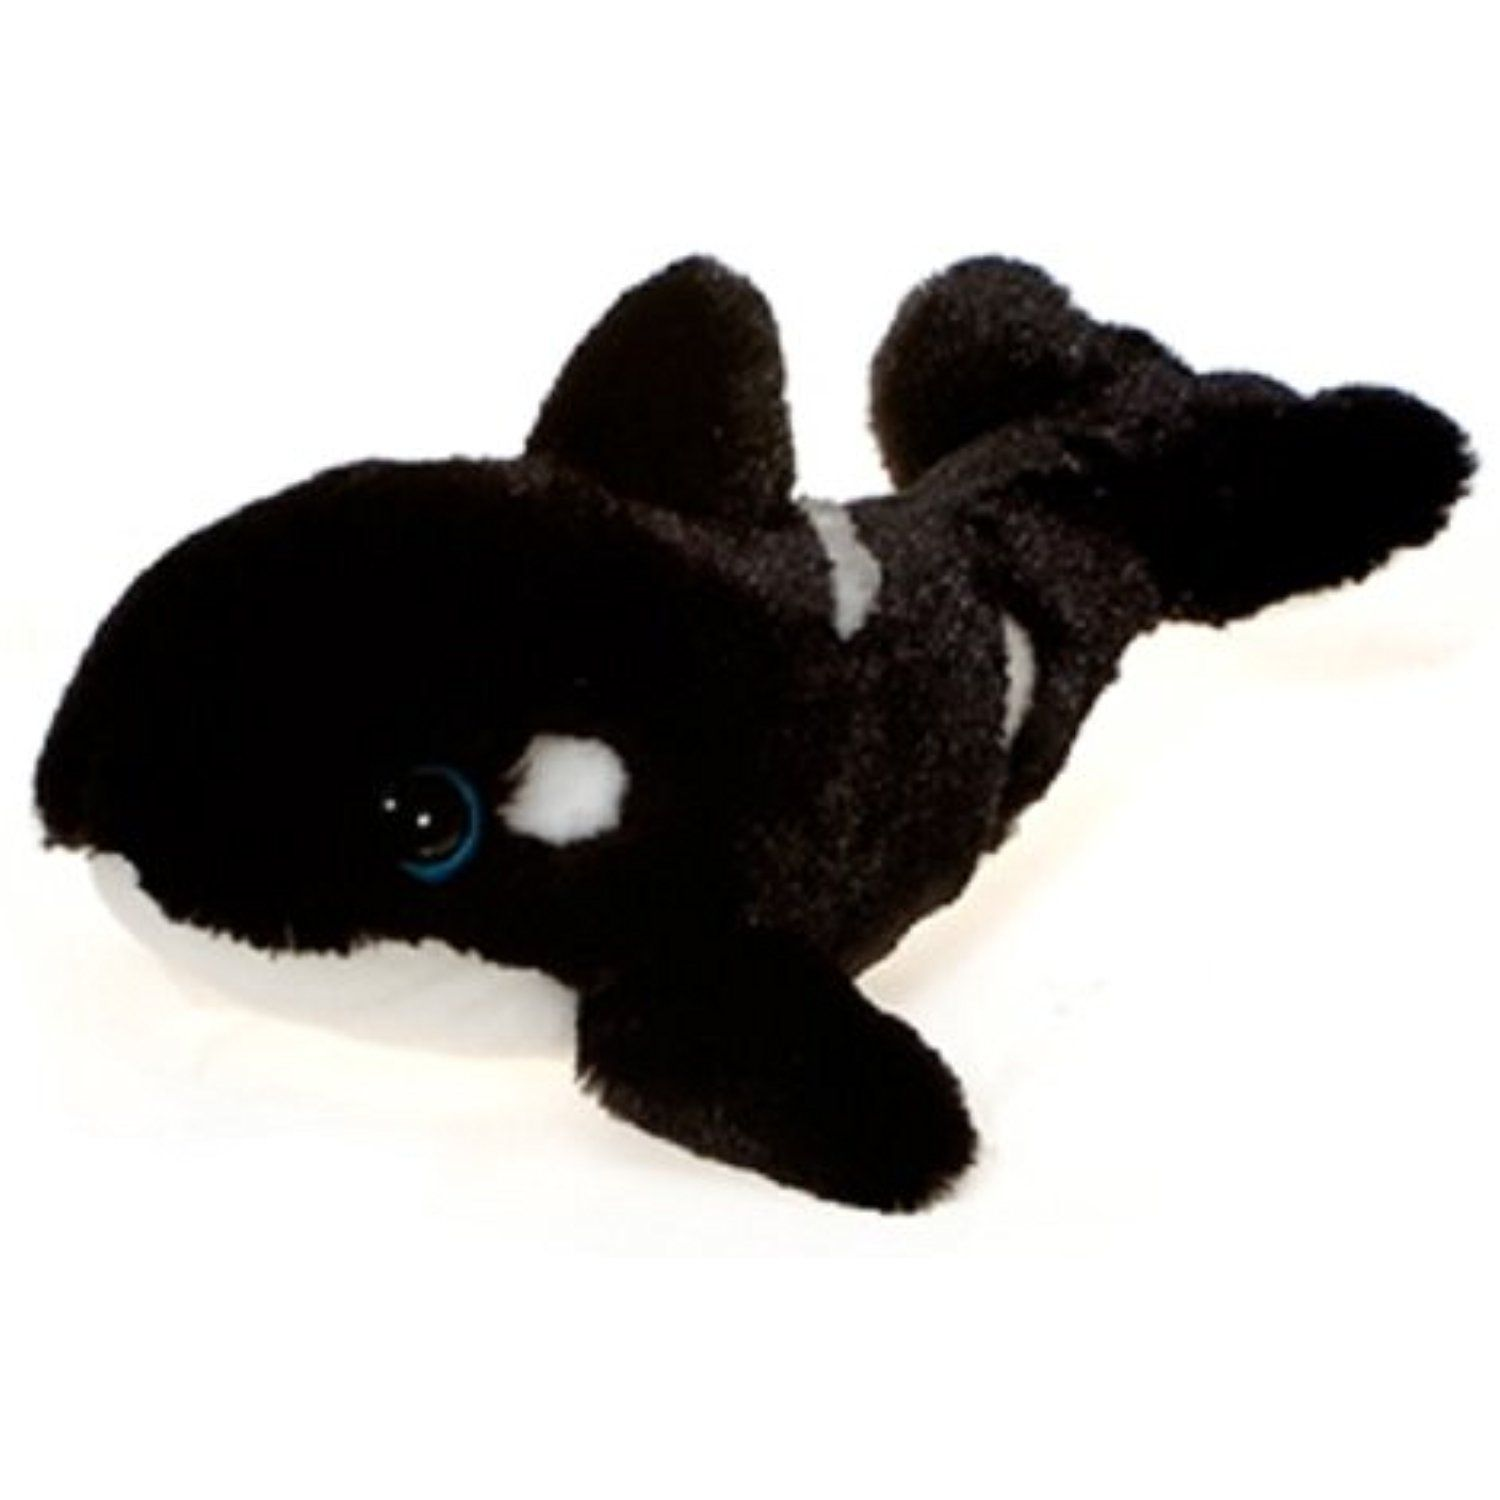 12 5 Orca Killer Whale With Big Eyes Plush Stuffed Animal Toy By